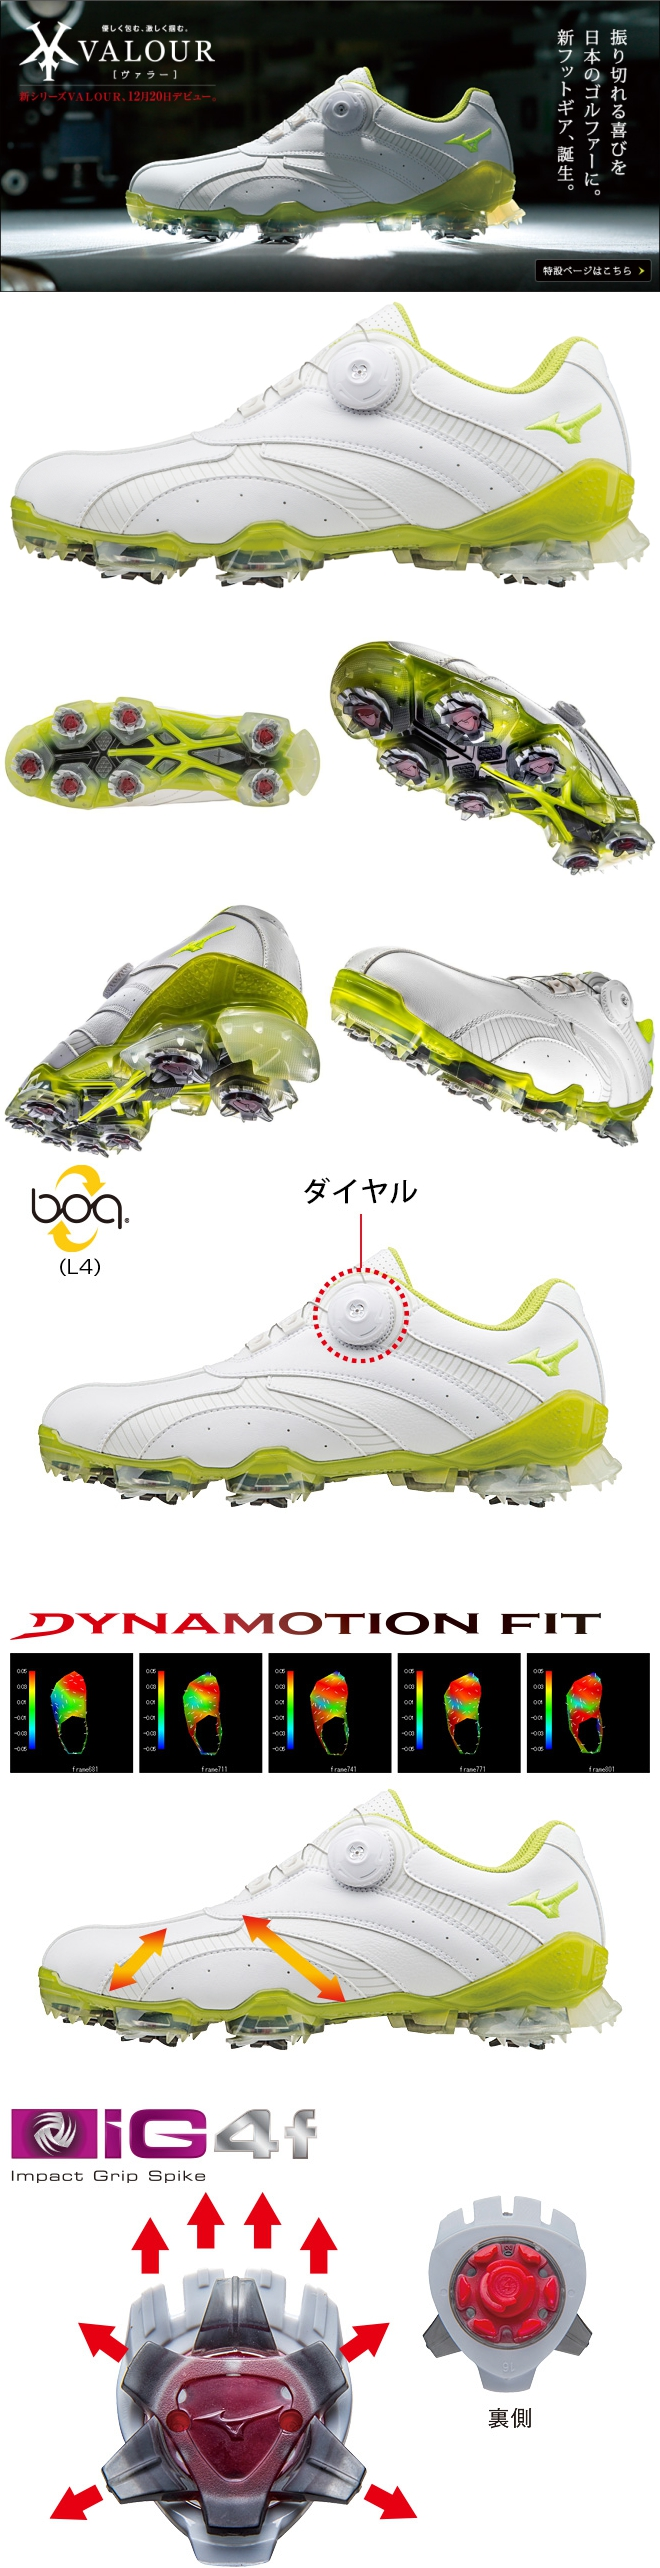 Mizuno Valour 001 Boa shoes